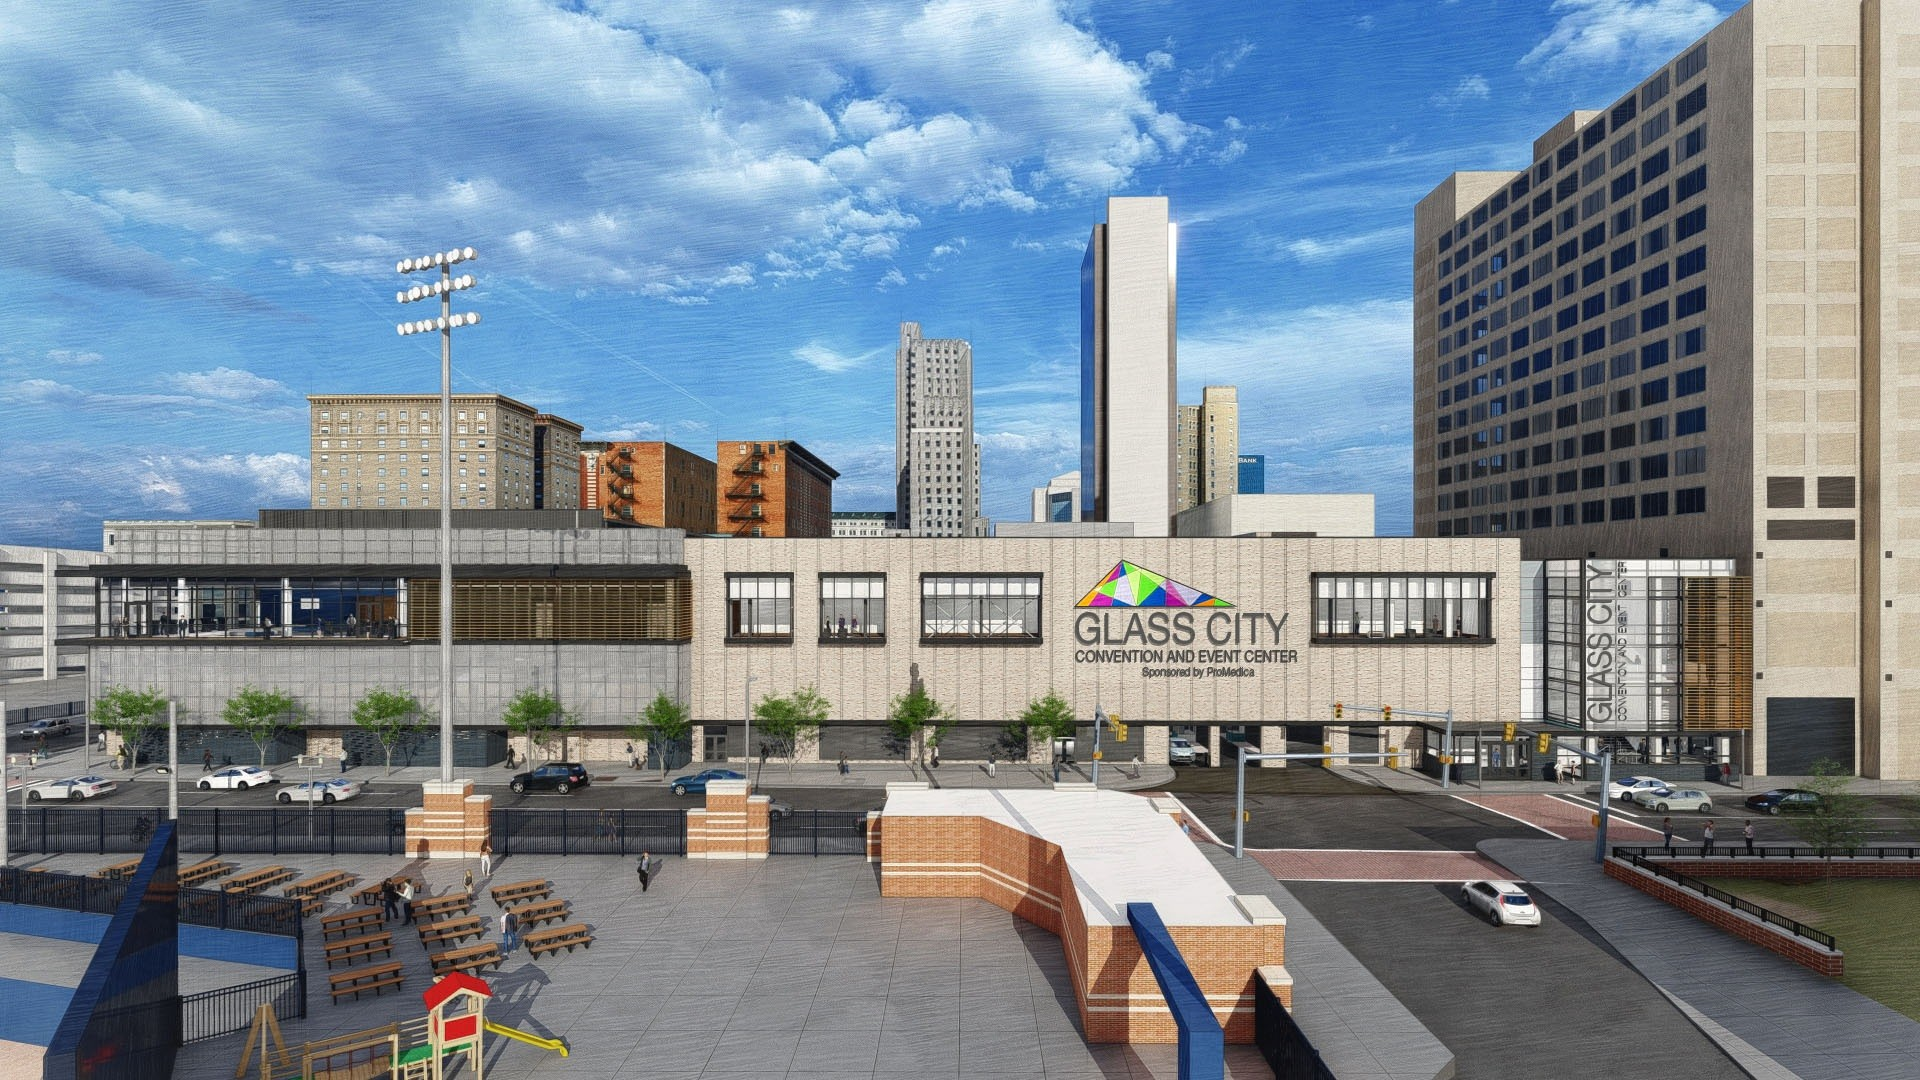 As an acknowledgment of ProMedica's early commitment to the redevelopment of the SeaGate Convention Centre, the Toledo-Lucas County Convention and Visitor's Bureau granted ProMedica the exclusive right to name the convention center, which will be renamed Glass City Convention and Event Center. (Photo courtesy of ProMedica)